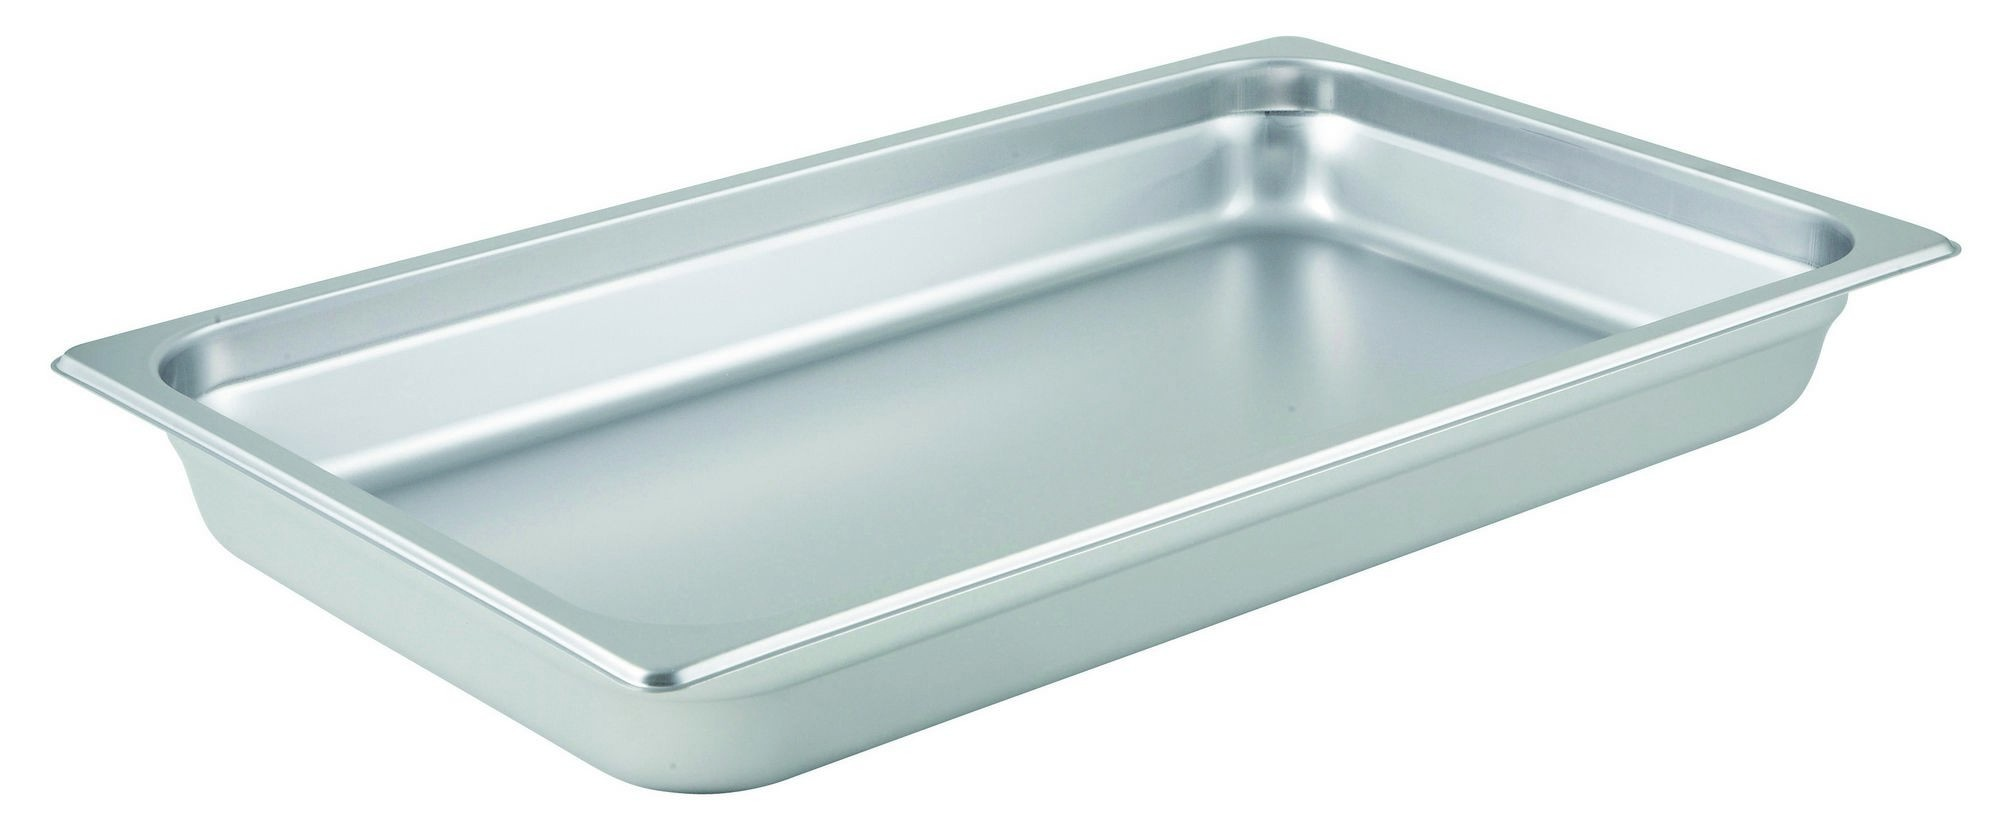 "Winco Spjm-102 Full Size Anti-Jam 24 Gauge Steam Table Pan 2-1/2"" Deep"